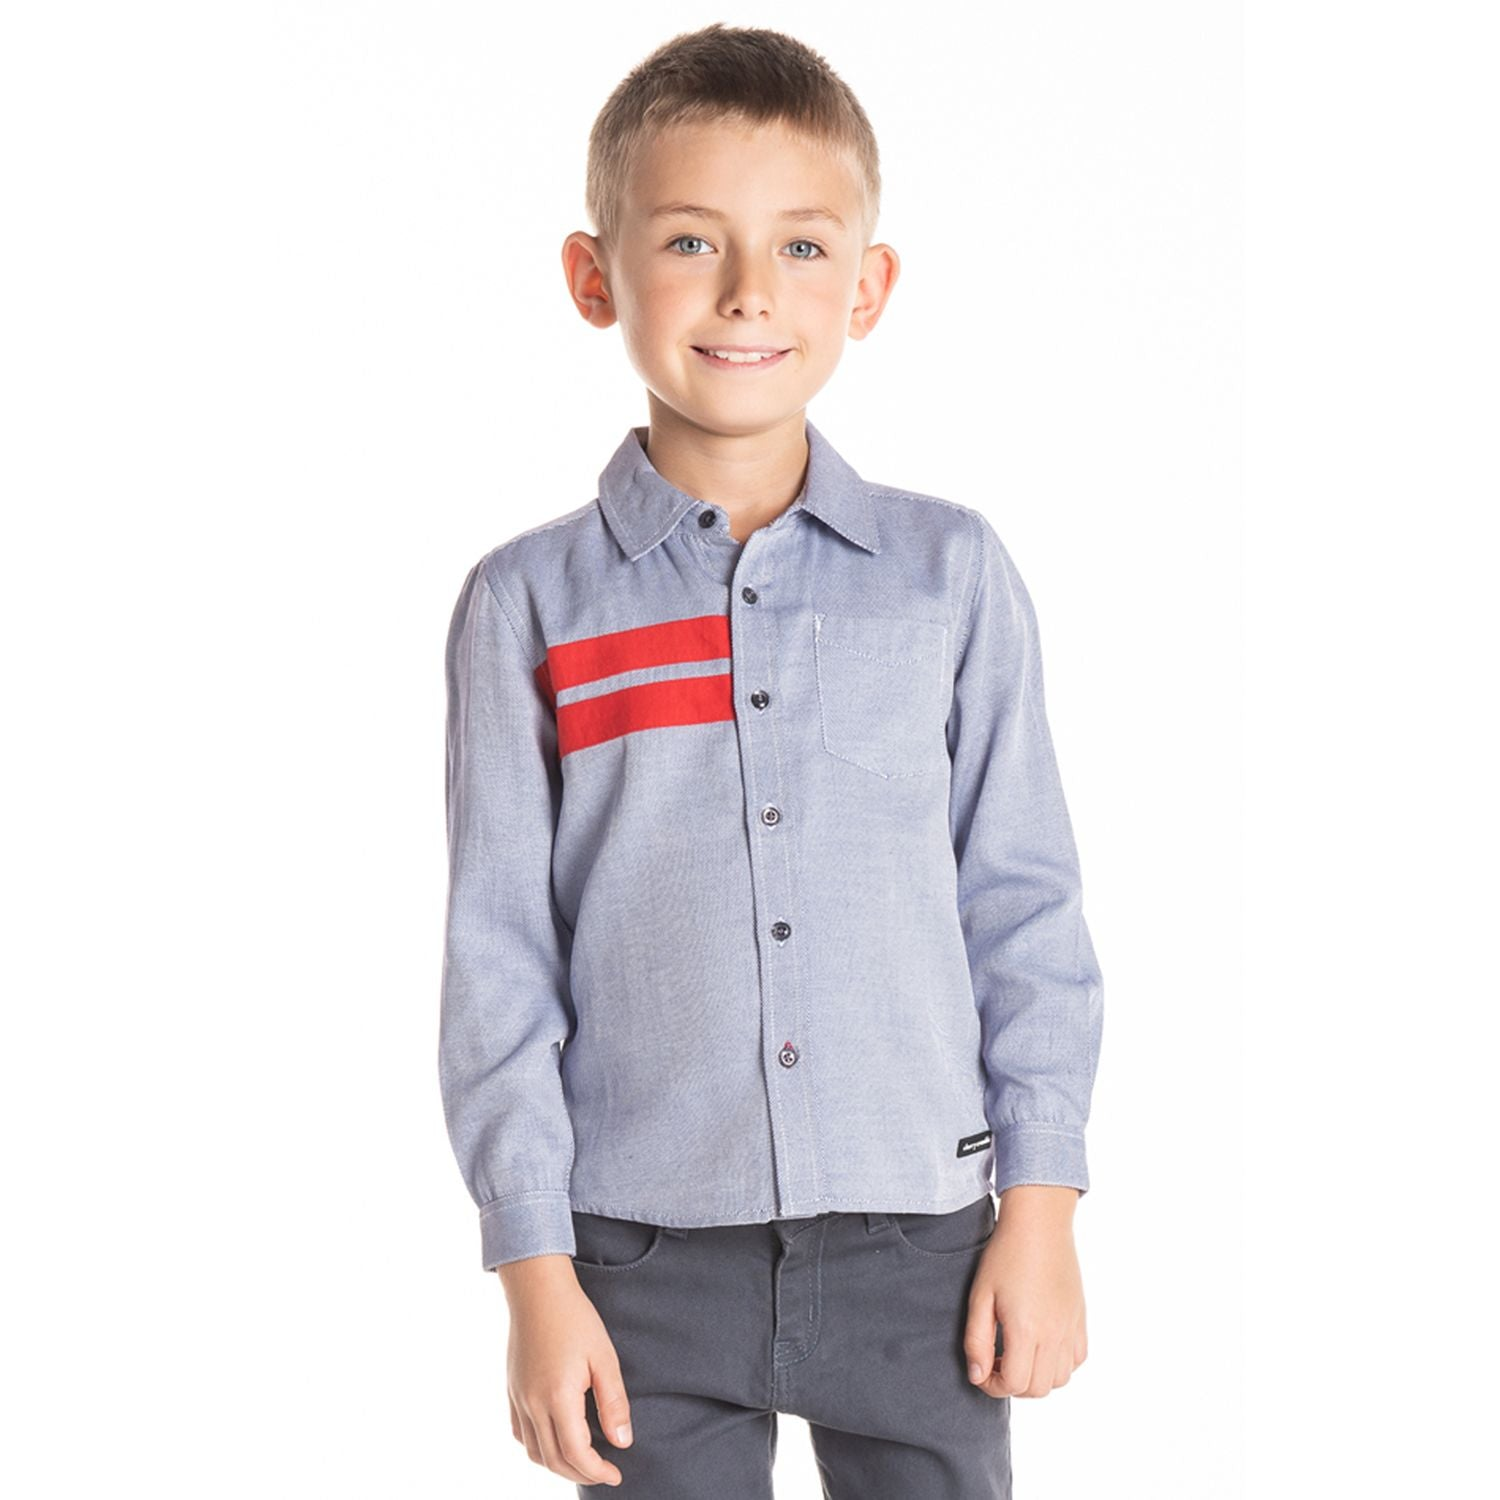 Bohemian Shirt for Boys